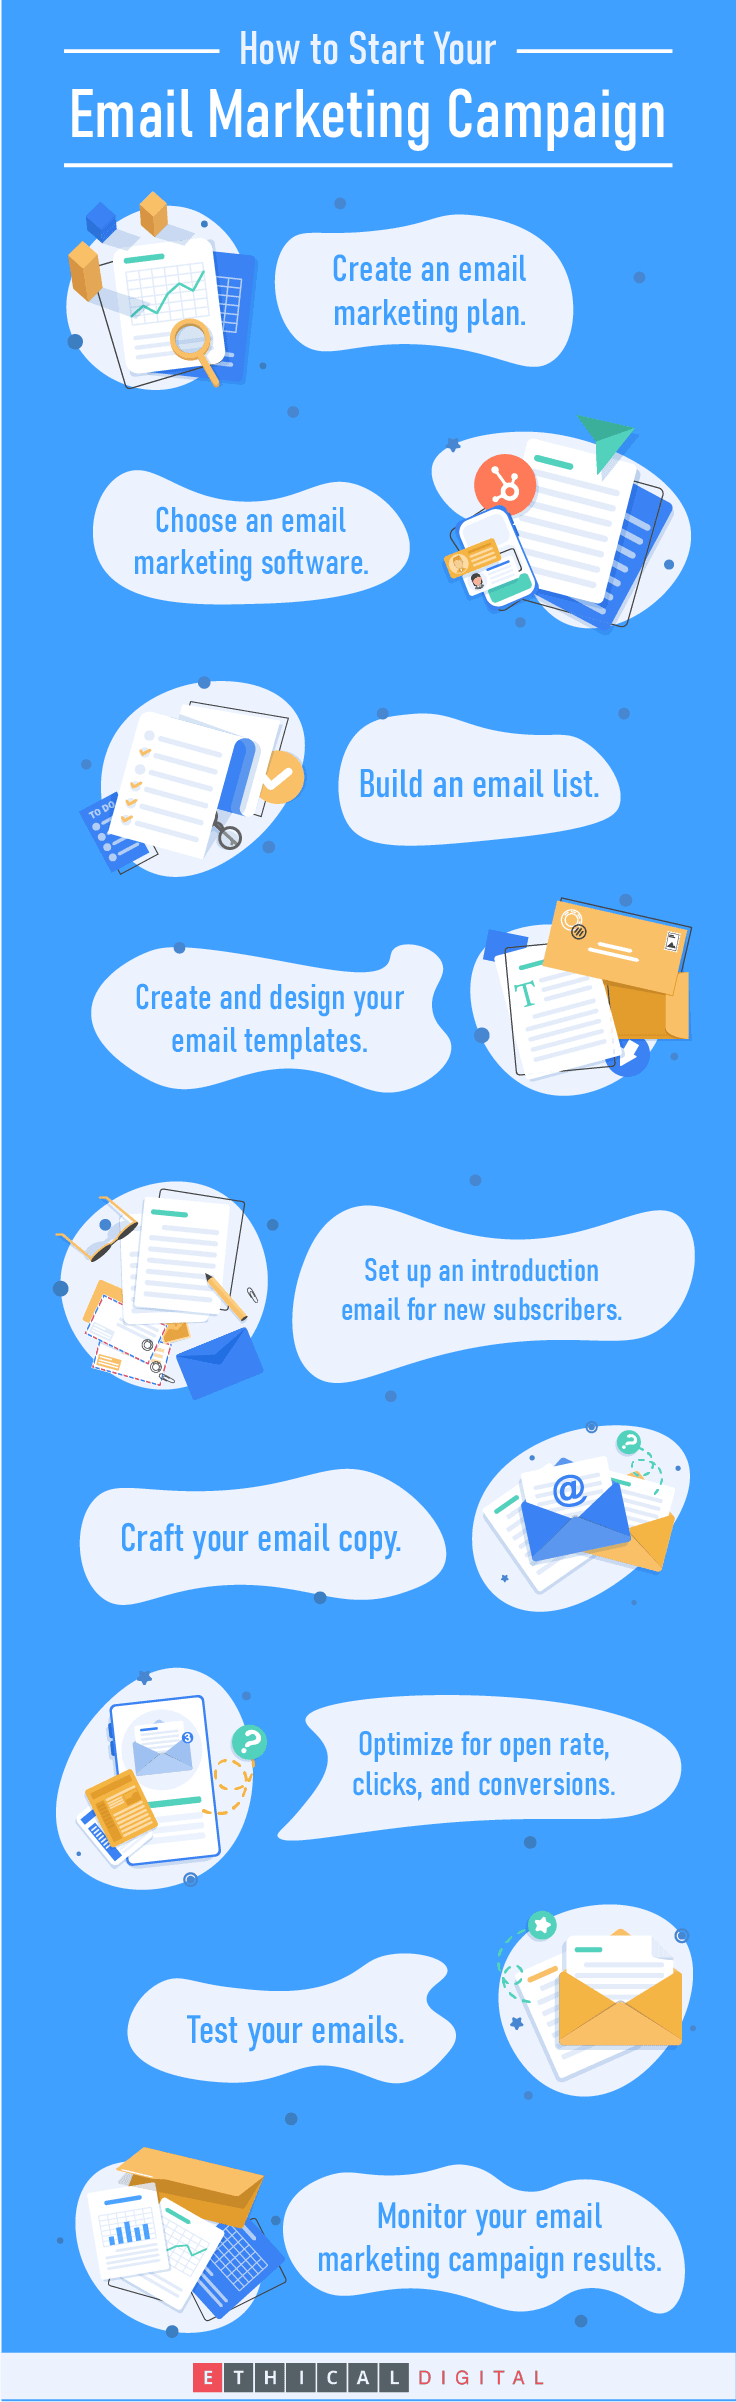 How to Start Your Email Marketing Campaign (1)